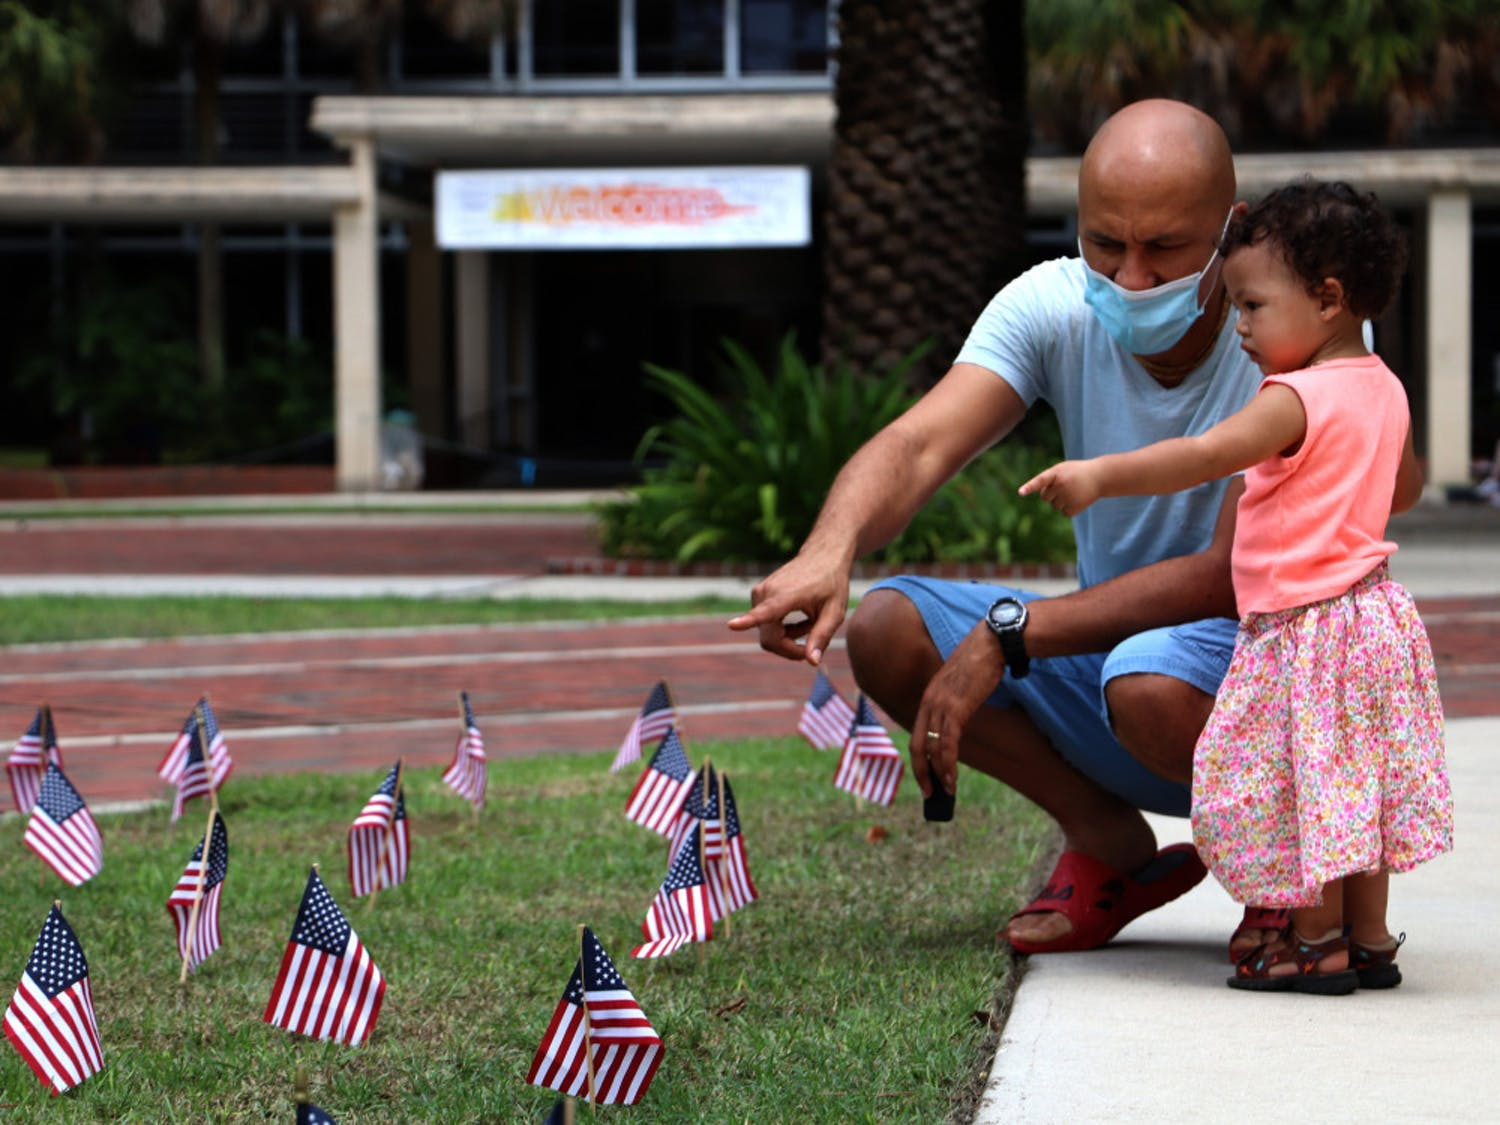 2,977 flags, a flag for each victim of the 9/11 attacks, were placed at Plaza of the Americas on September 11, 2020. The UF organization, Young Americans For Freedom placed them on Thursday night.